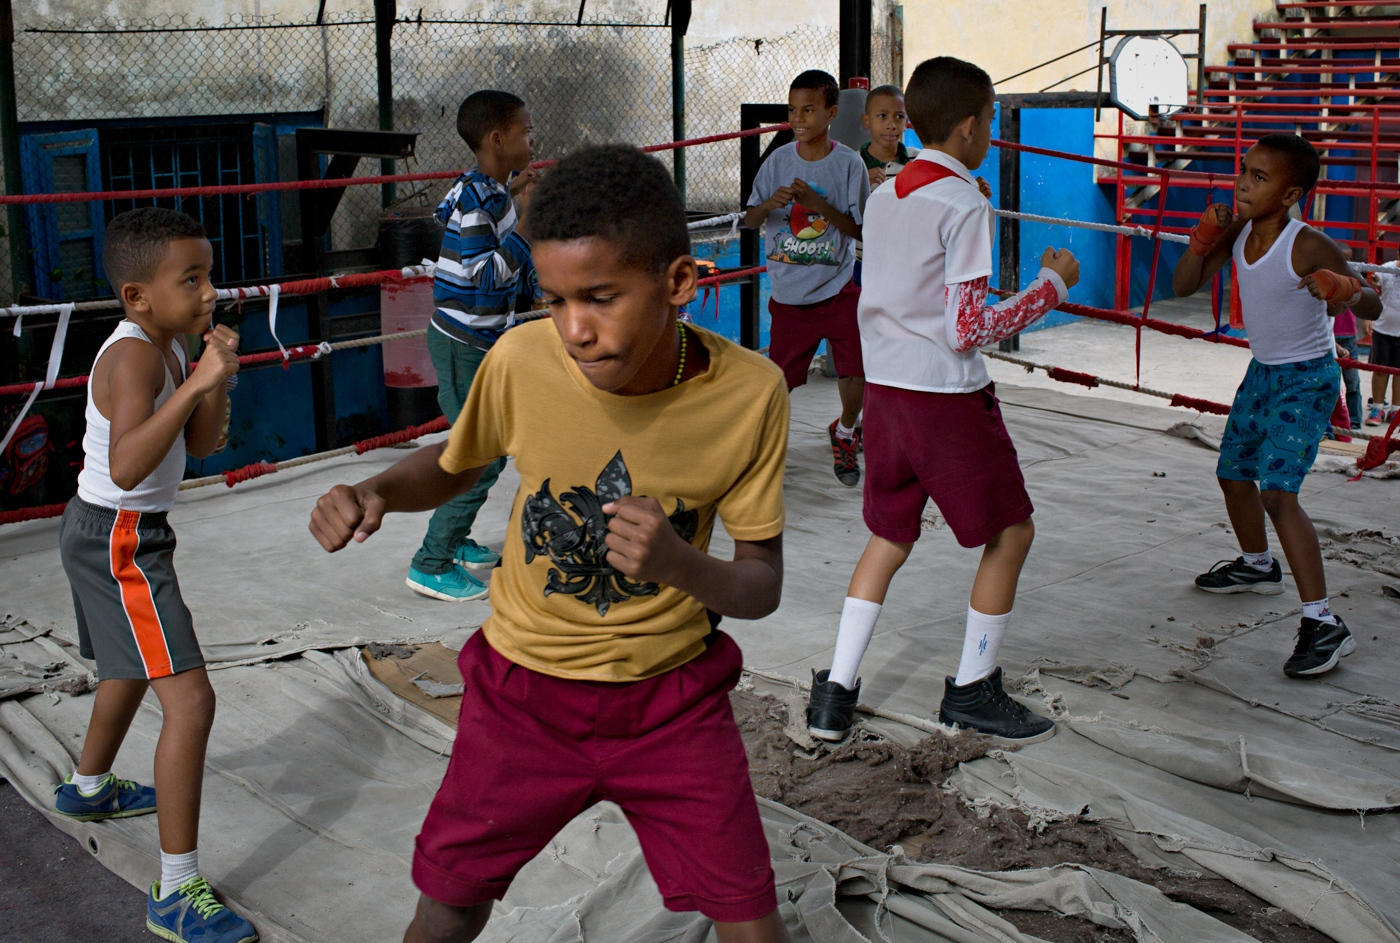 Rafael Trejo Boxing Gym is the oldest functioning boxing gym in Havana and hosts children after school for boxing training. As other facilities, they mostly function on donations from the public.